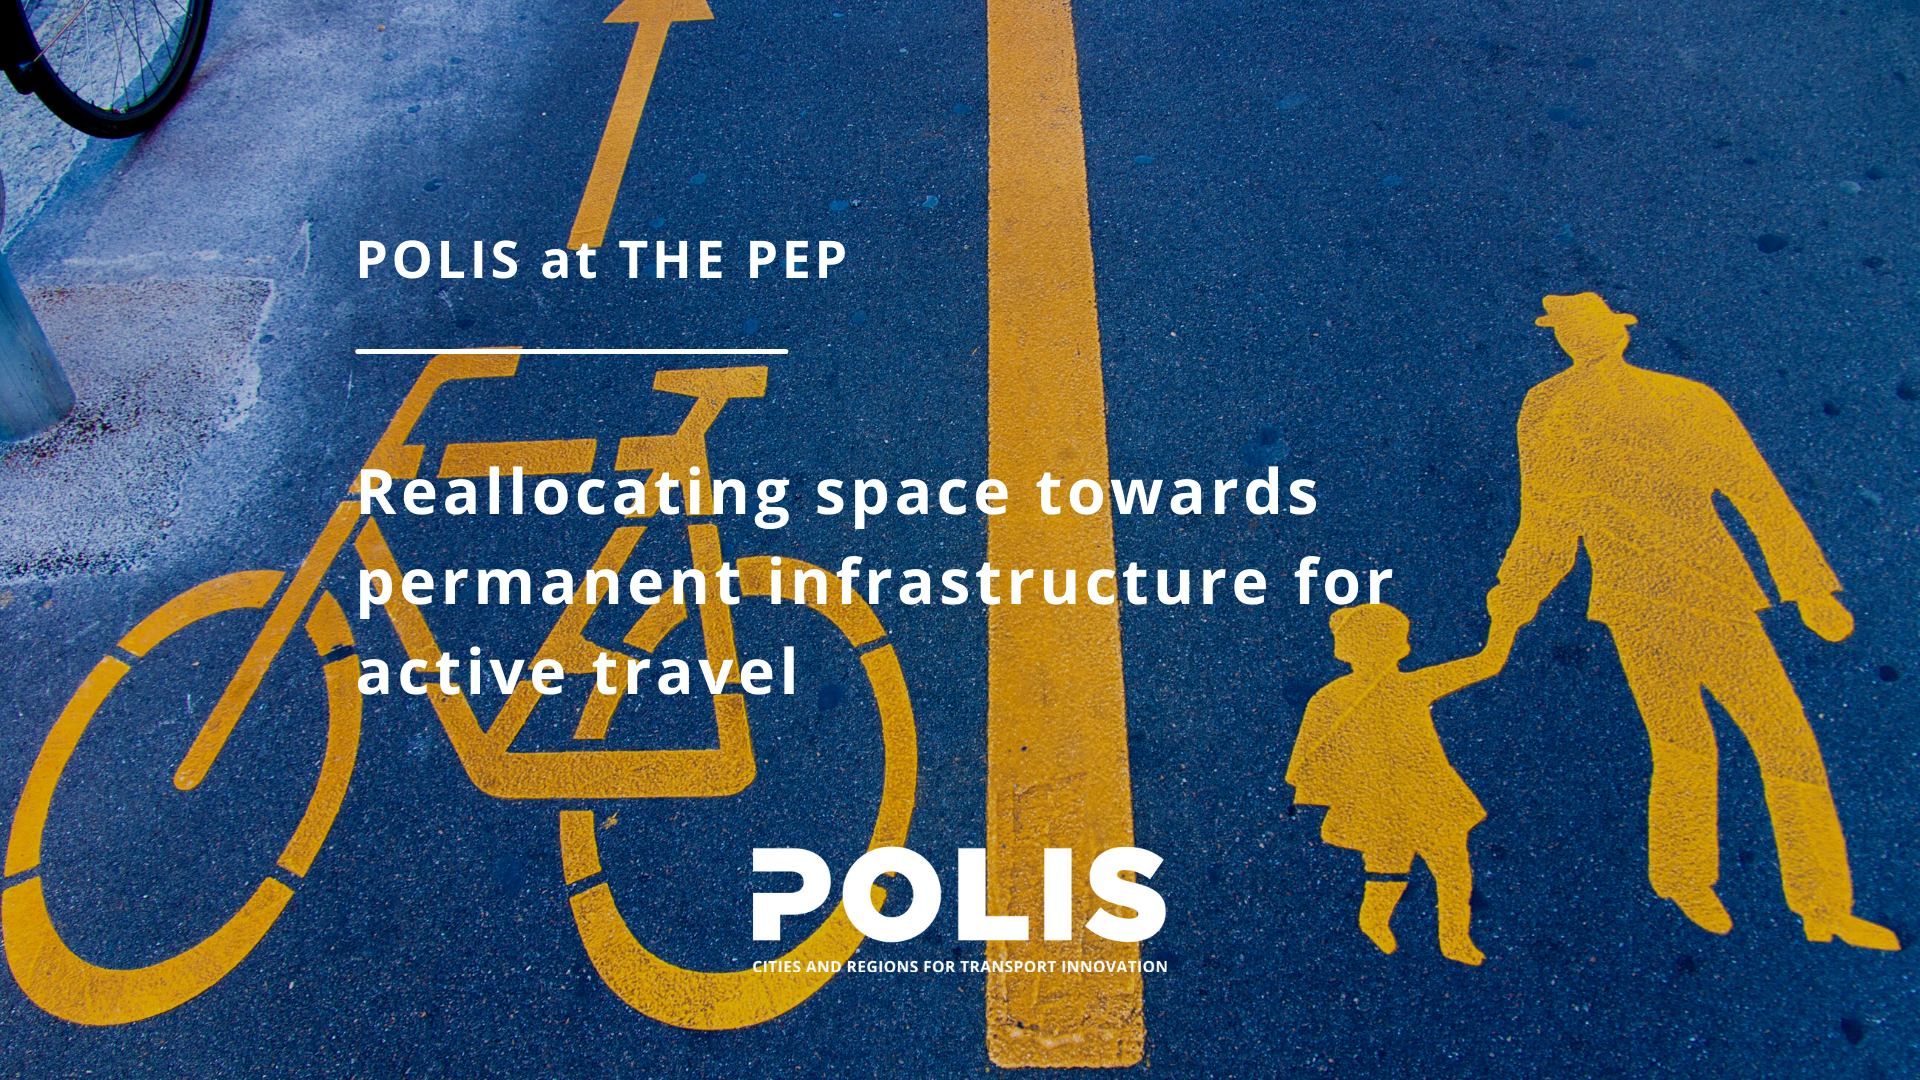 THE PEP: Reallocating space for active travel